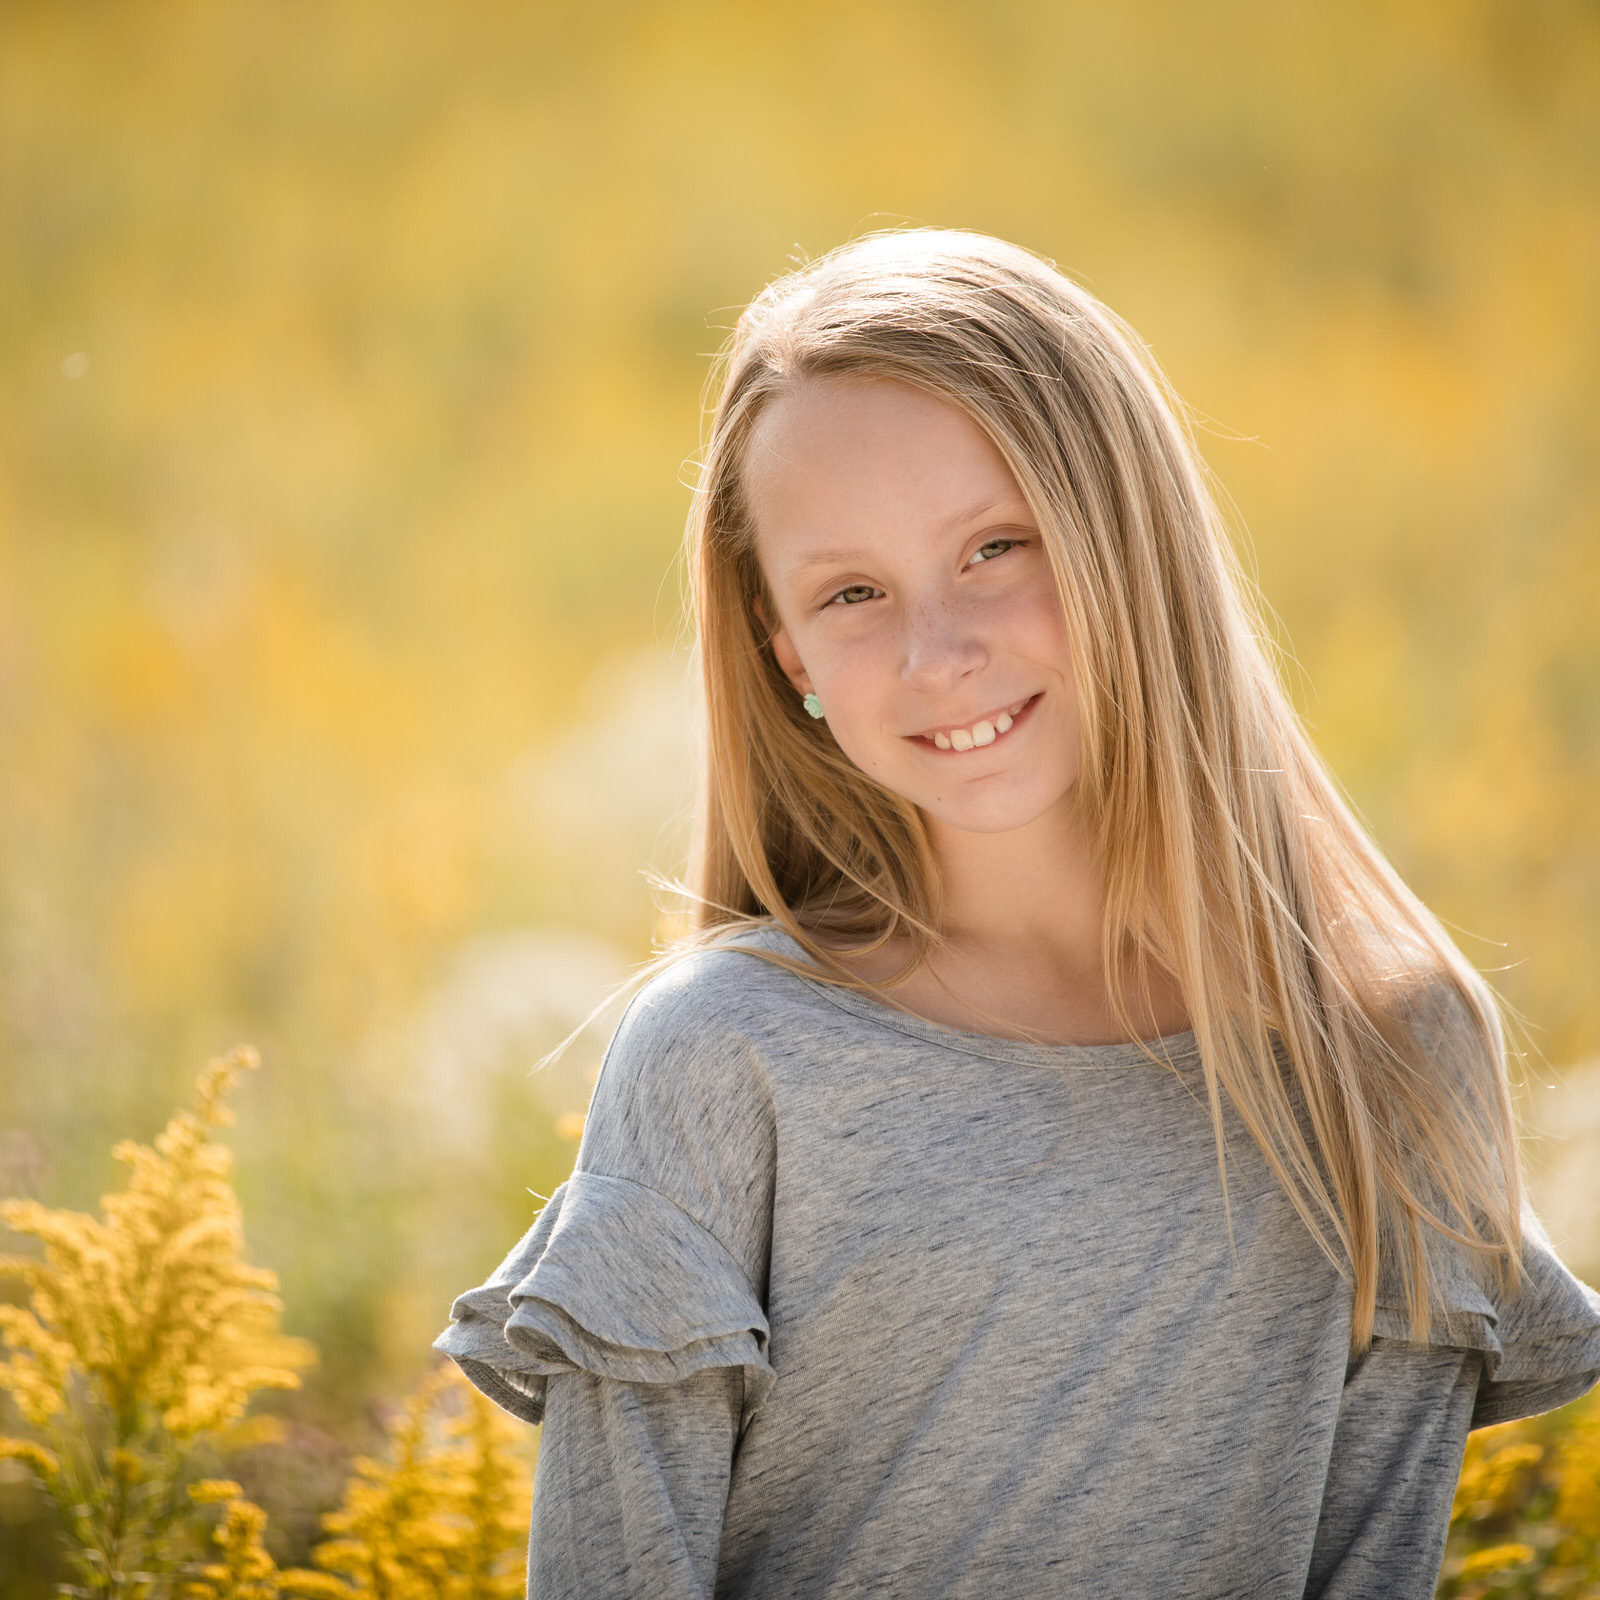 Downers_Grove_awesome_natural_lifestyle_children_and_family_portrait_photography_by_Summer_Brader_ar0037